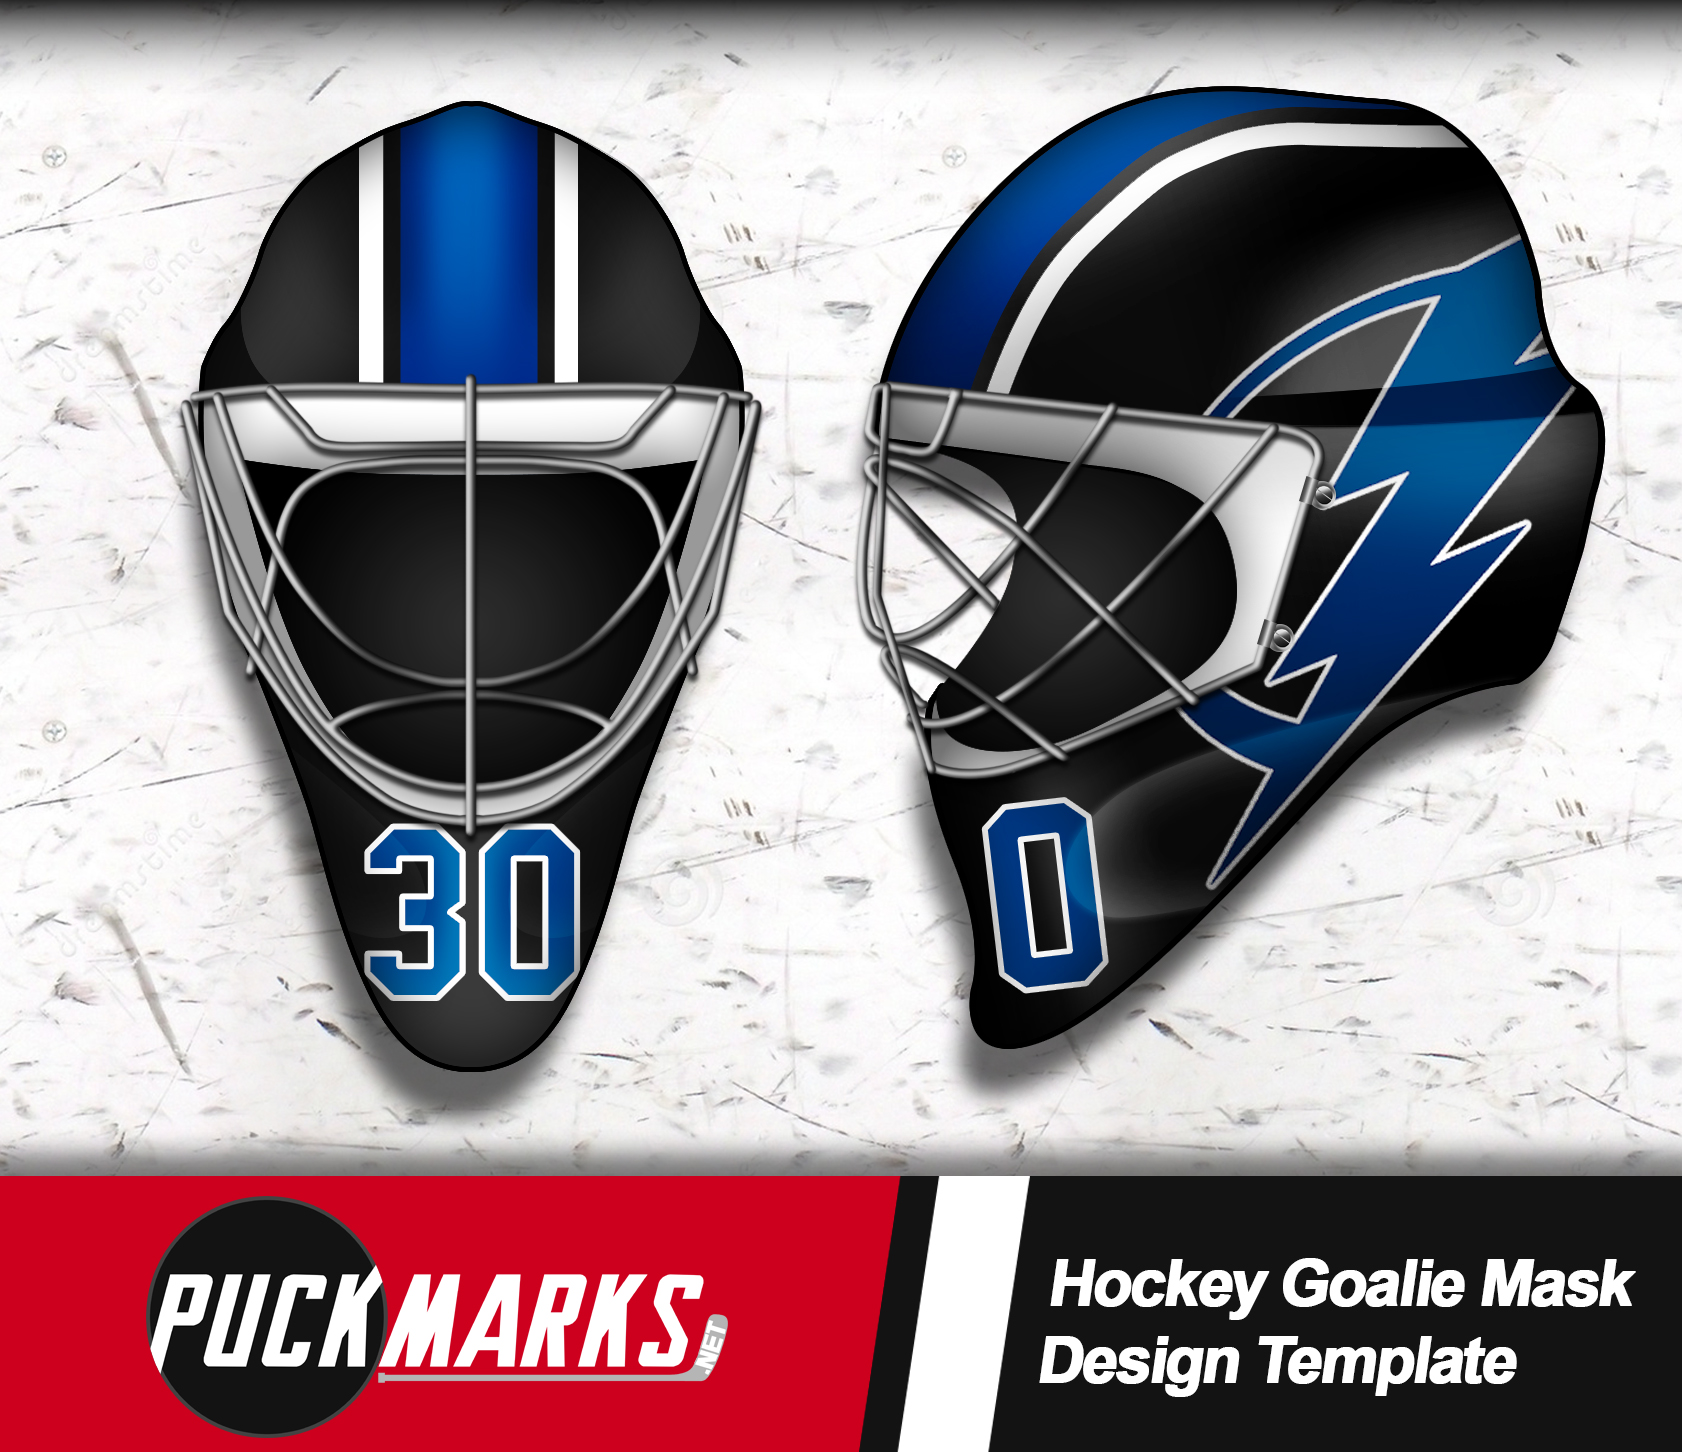 Get Our Realistic Hockey Goalie Mask Template